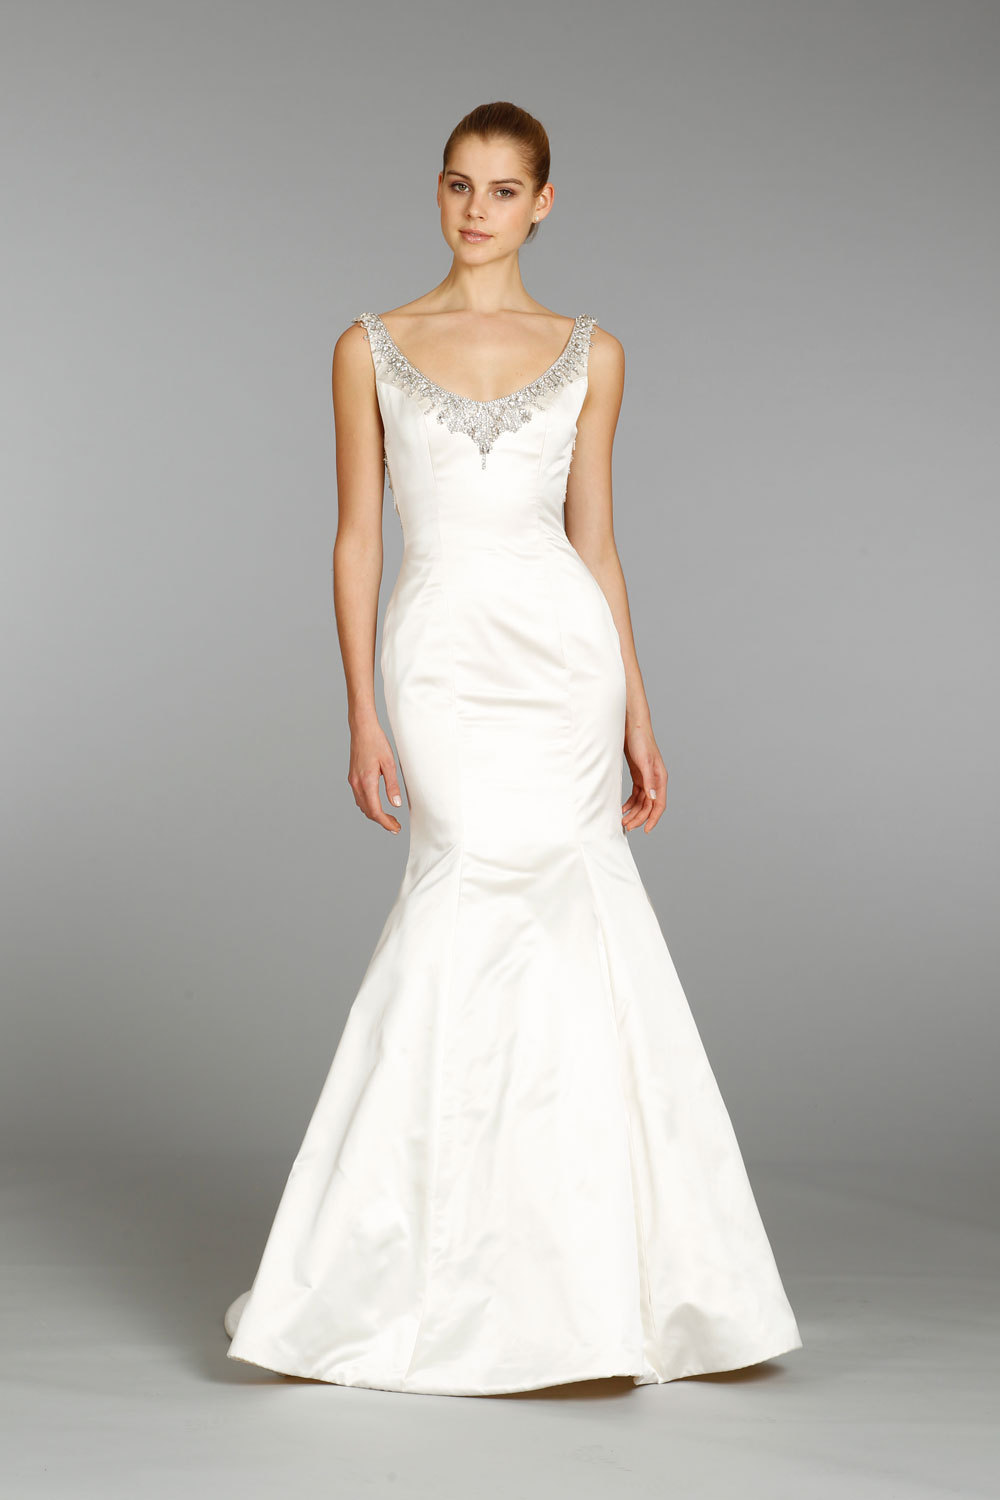 Lazaro wedding dress fall 2013 bridal 3353 for Where to buy lazaro wedding dresses